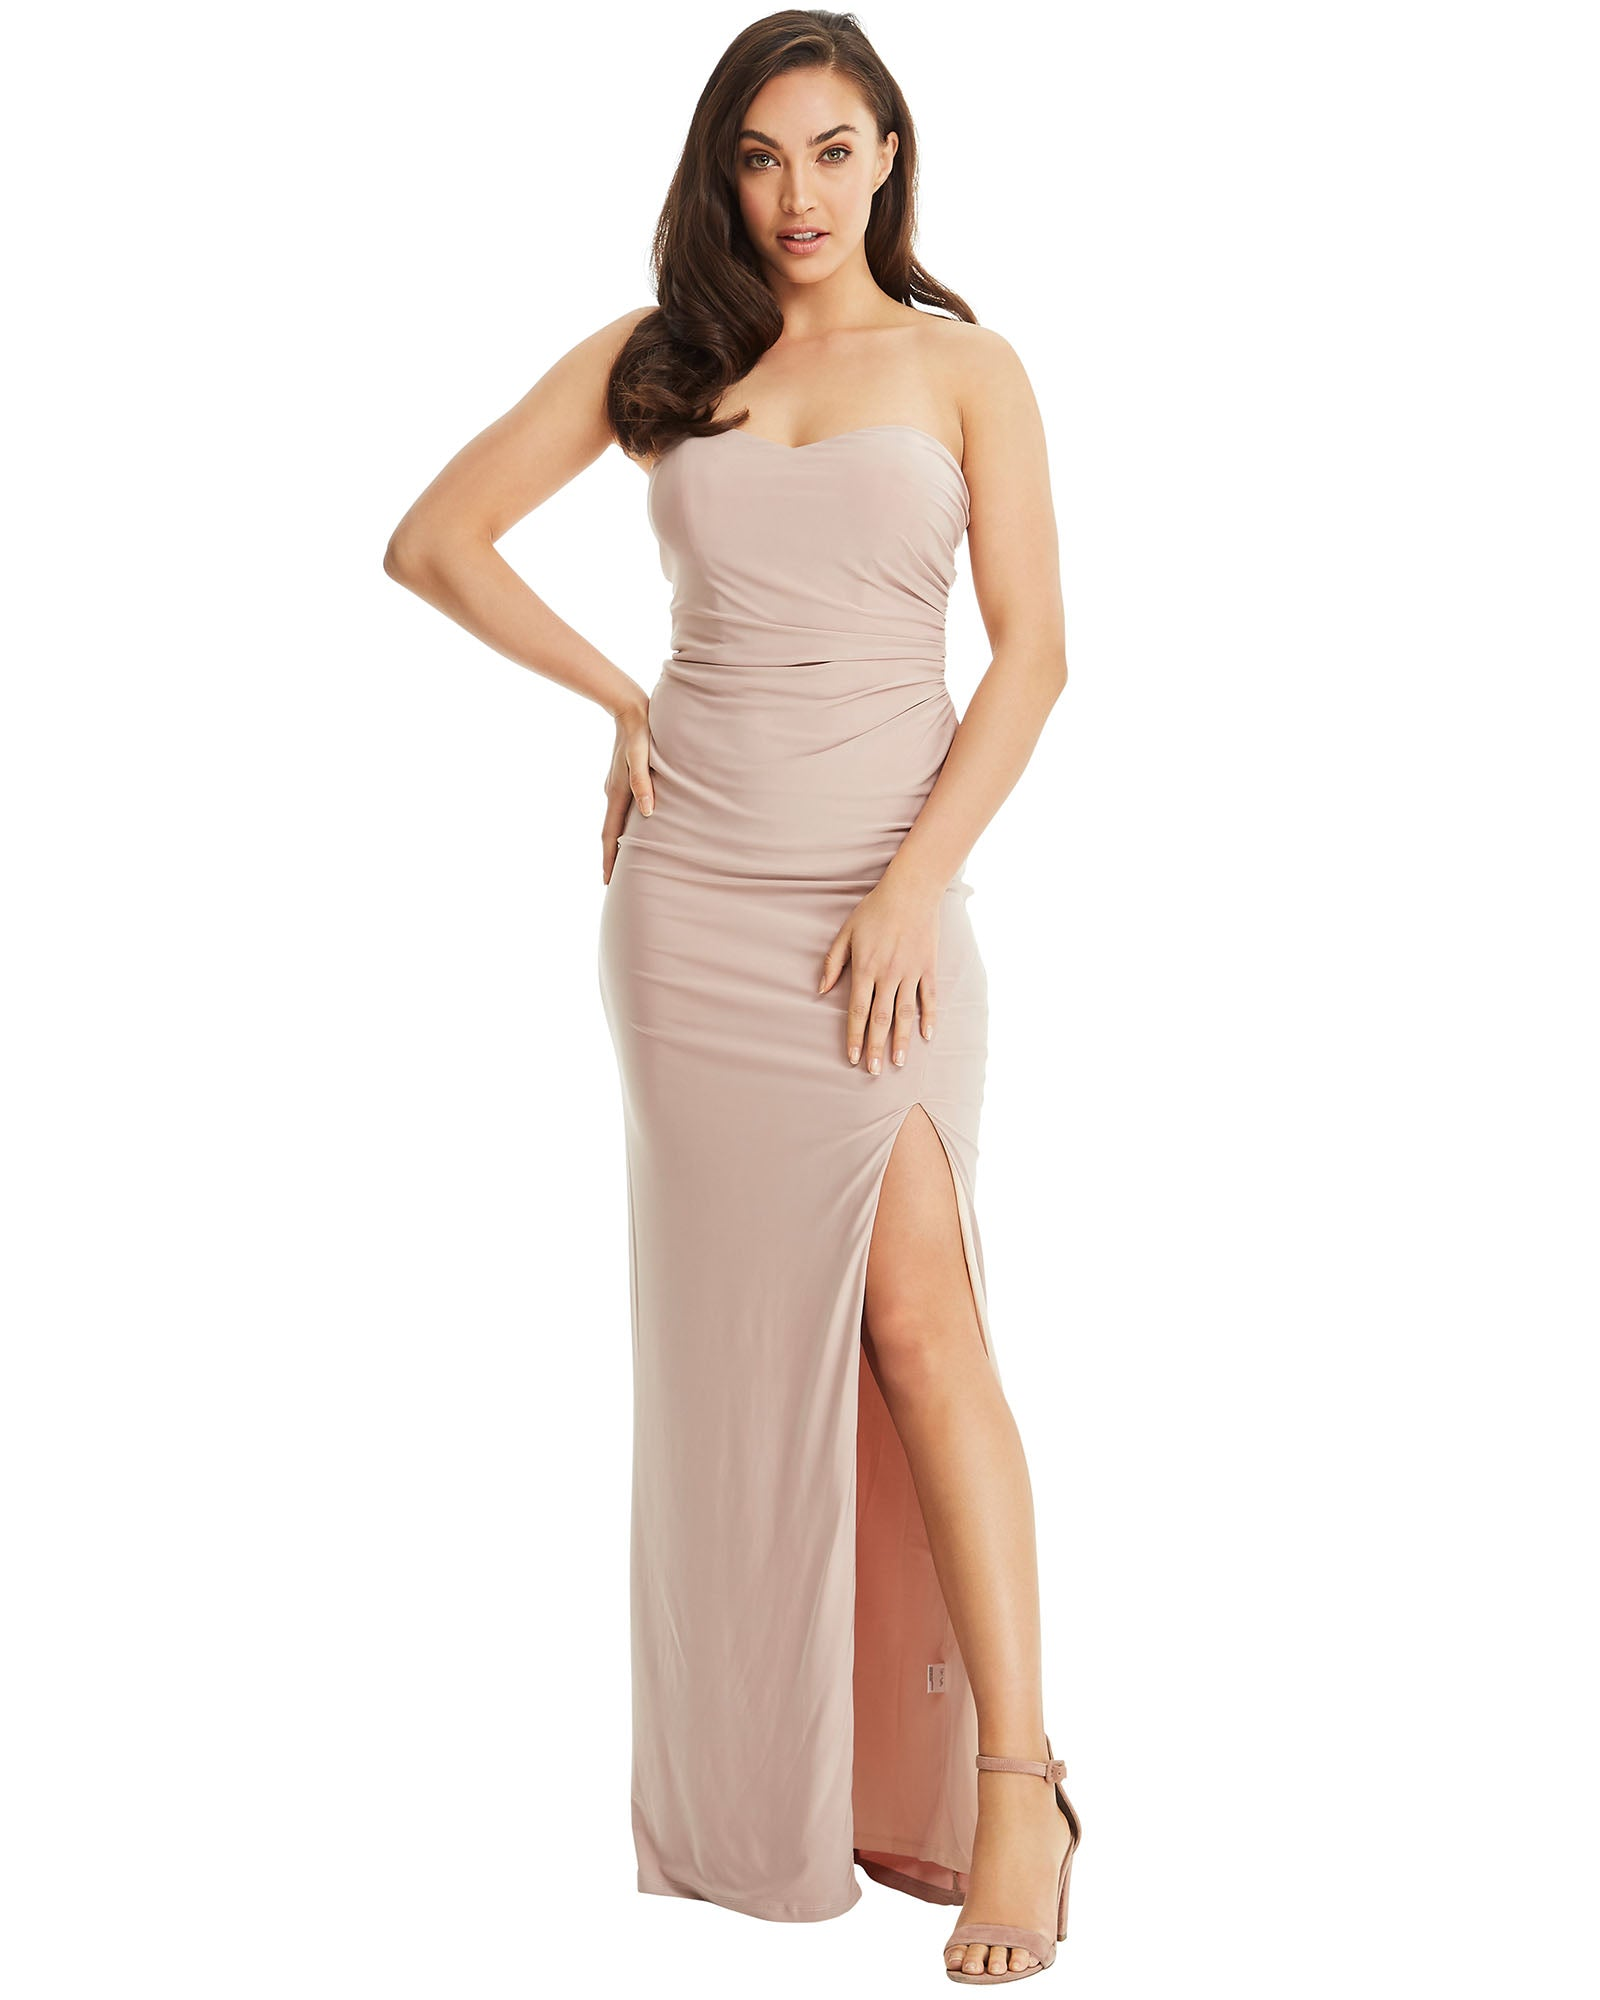 SKIVA strapless evening dress long latte neutral split gown open back sheath stretch fabric